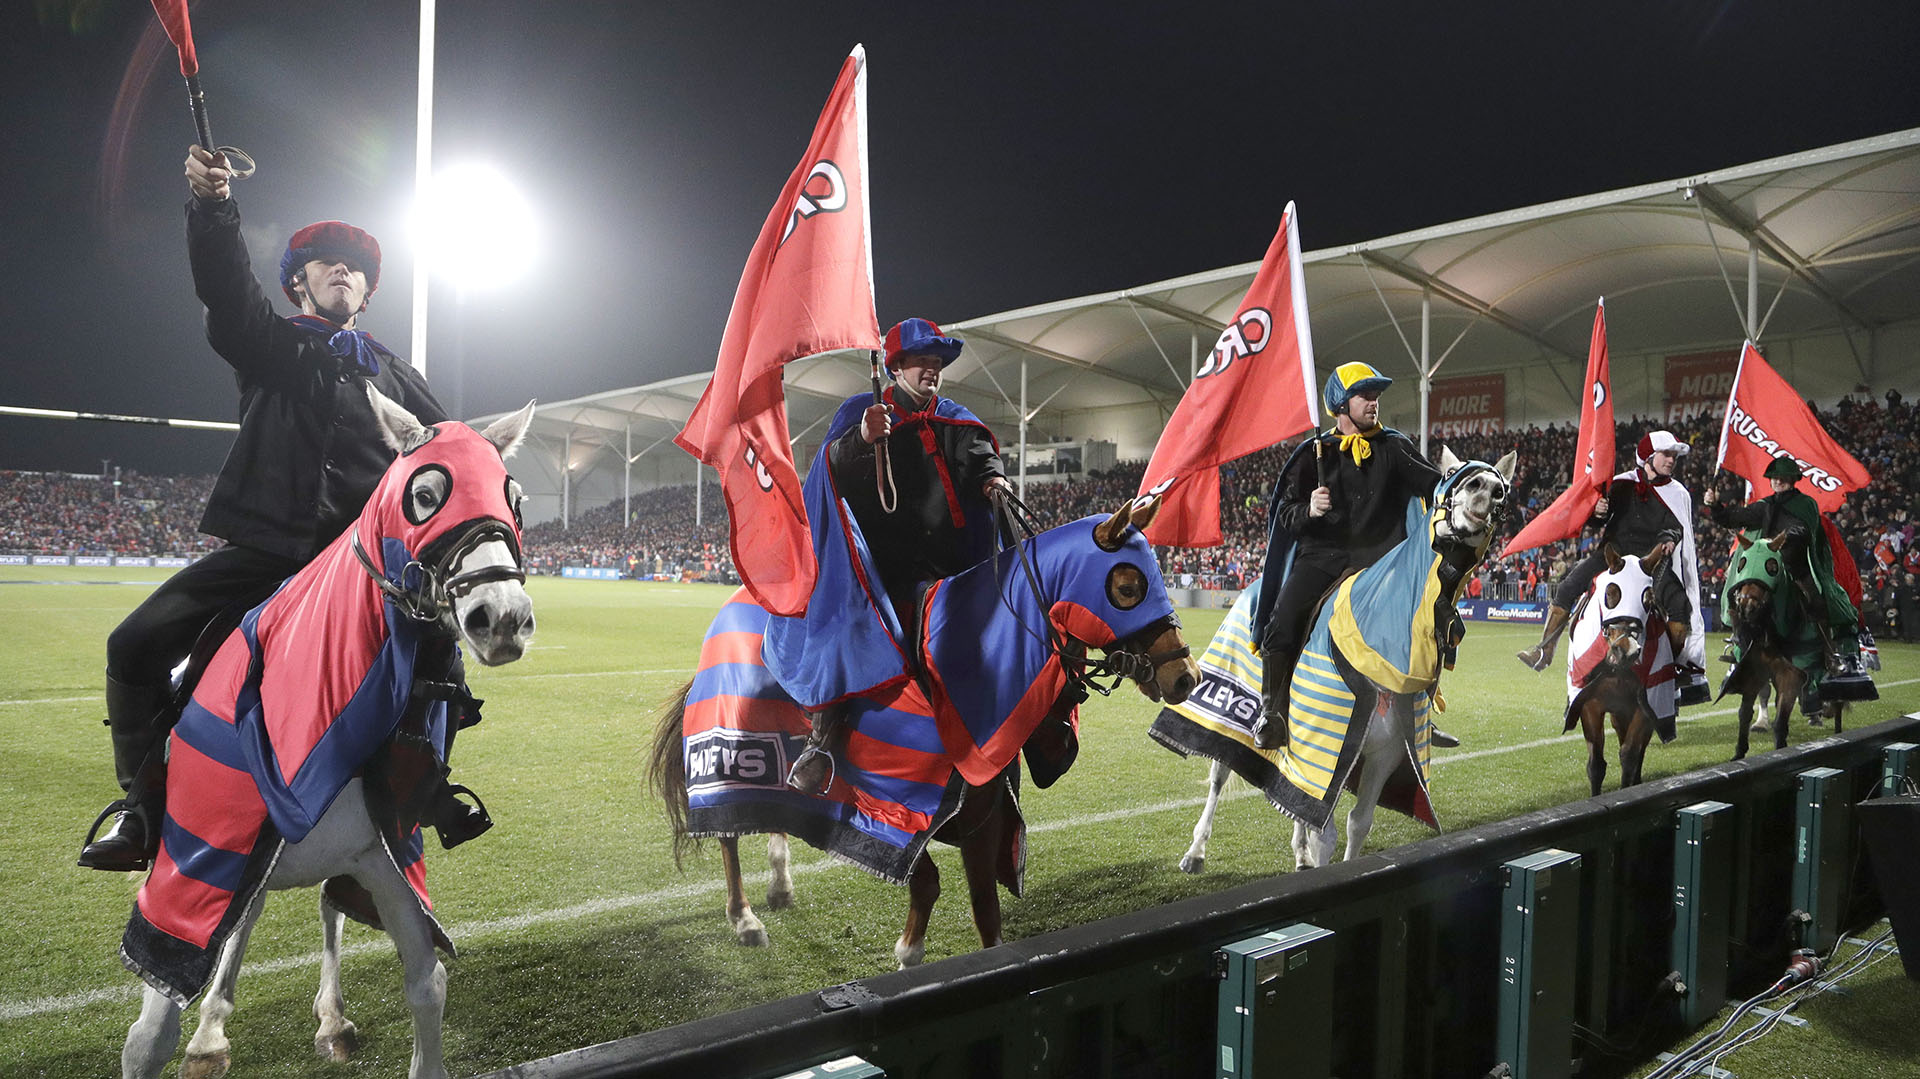 Los jinetes de Crusaders, en la previa de la final en Christchurch, saluda a las tribunas. (AP Photo/Mark Baker)